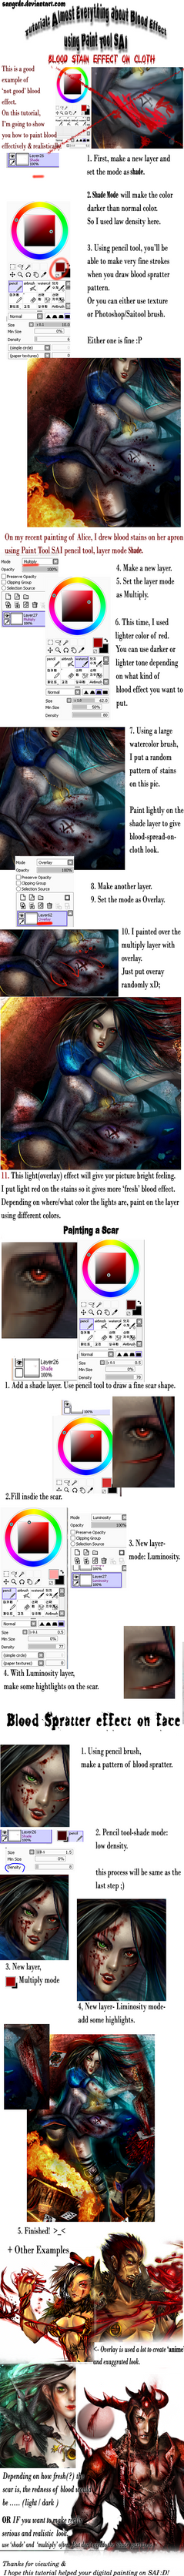 Blood effect tutorial on paint tool sai by sangrde on deviantart blood effect tutorial on paint tool sai by sangrde ccuart Images